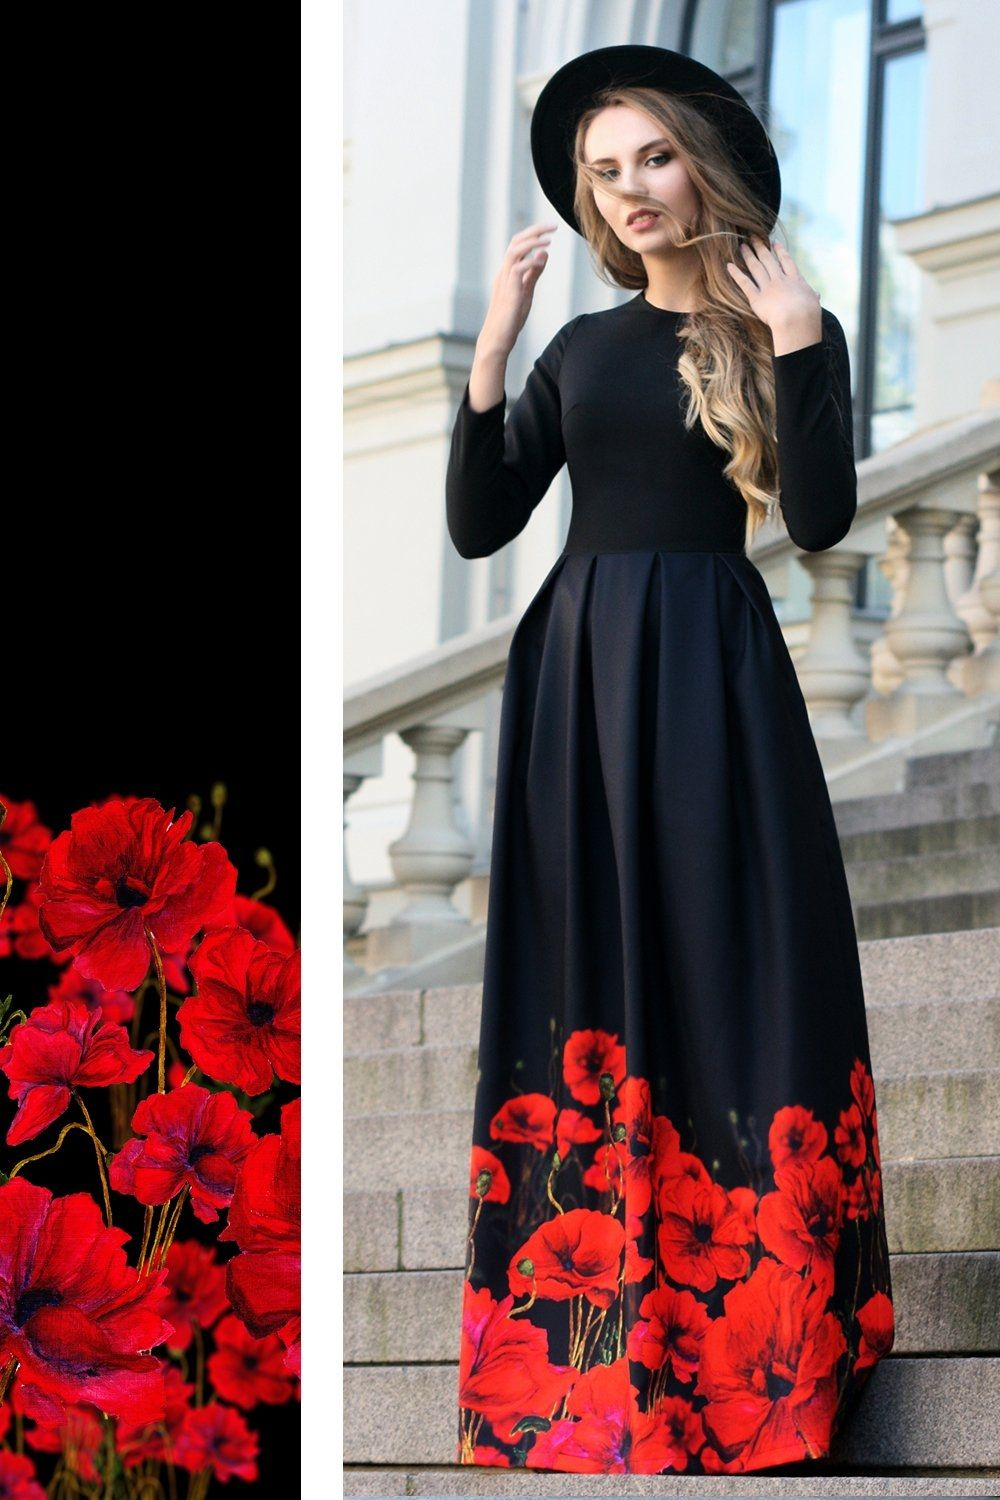 Long black dress with painted poppies dress or skirt pinterest